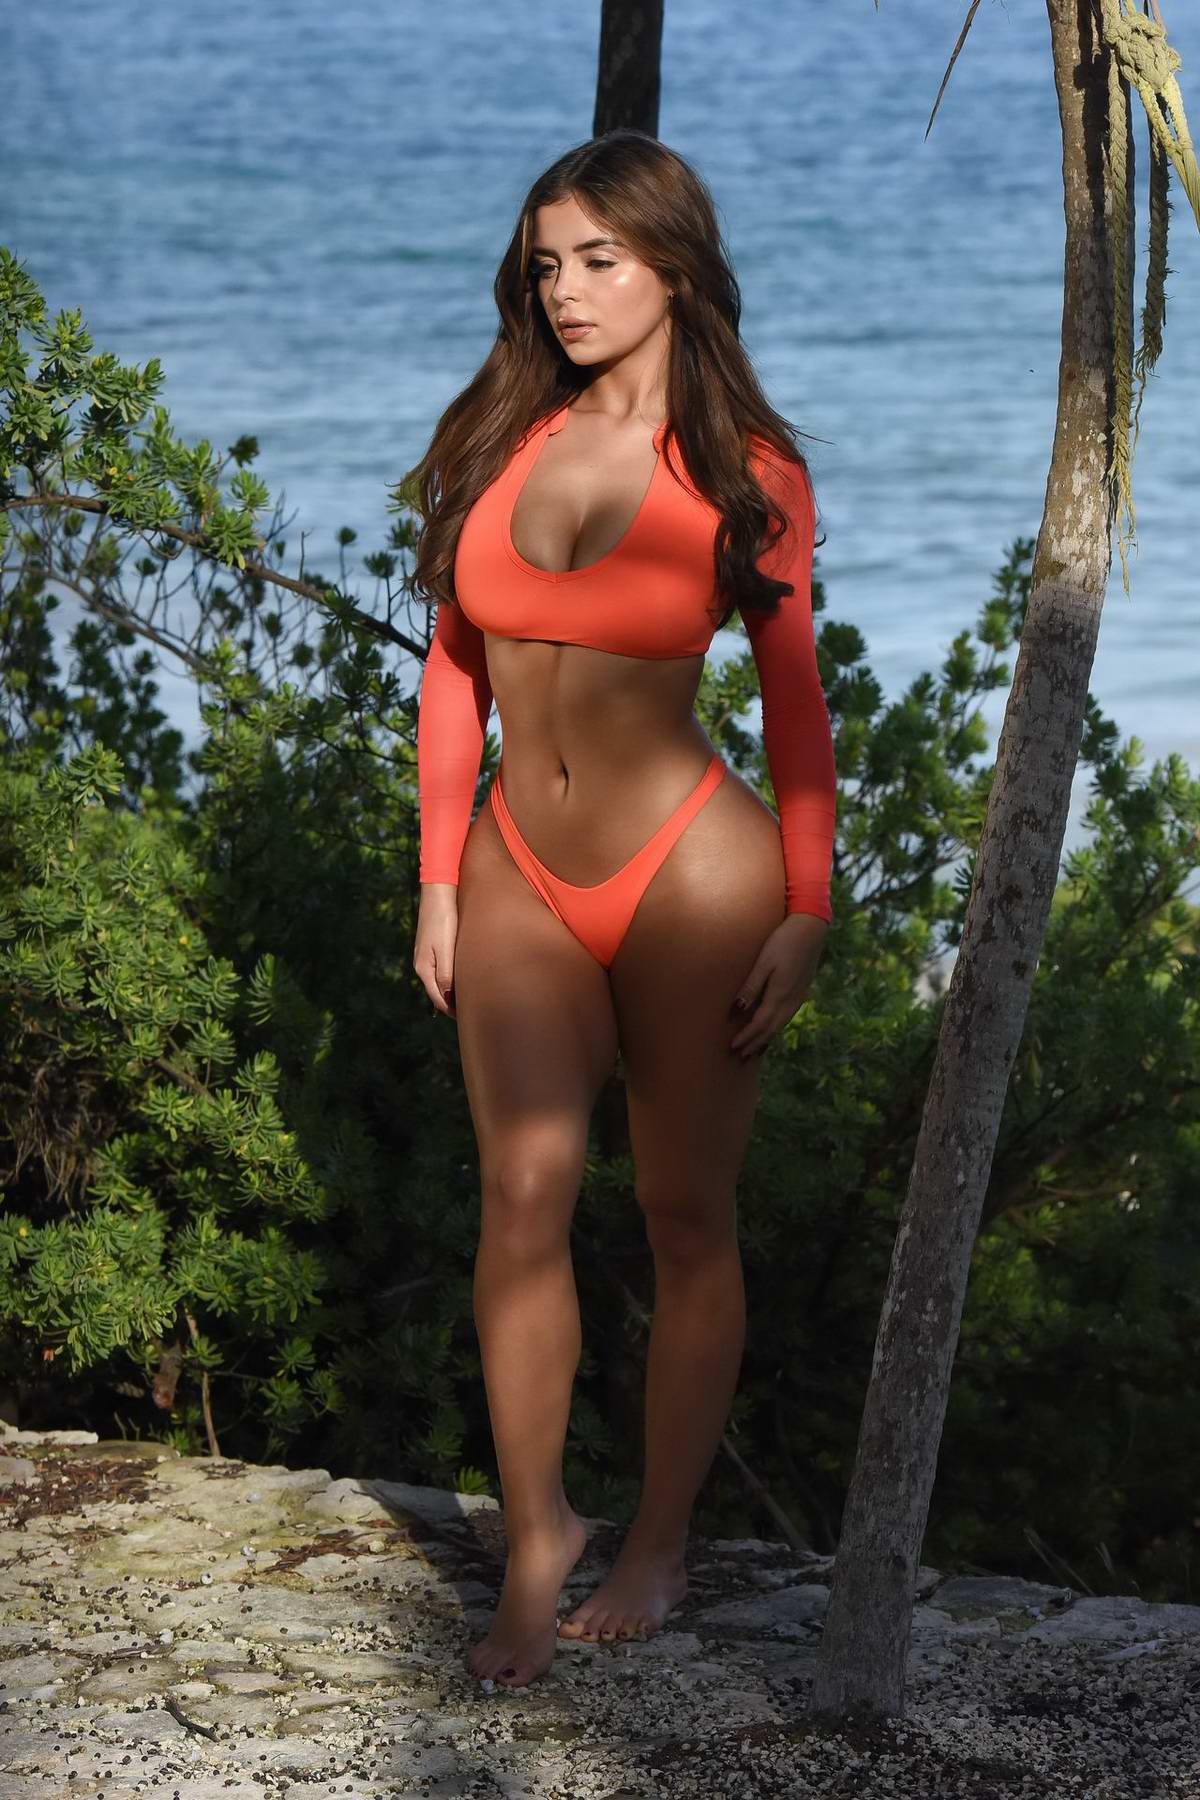 Demi Rose wears a plunging orange top and bikini bottoms during a photoshoot in Tulum, Mexico